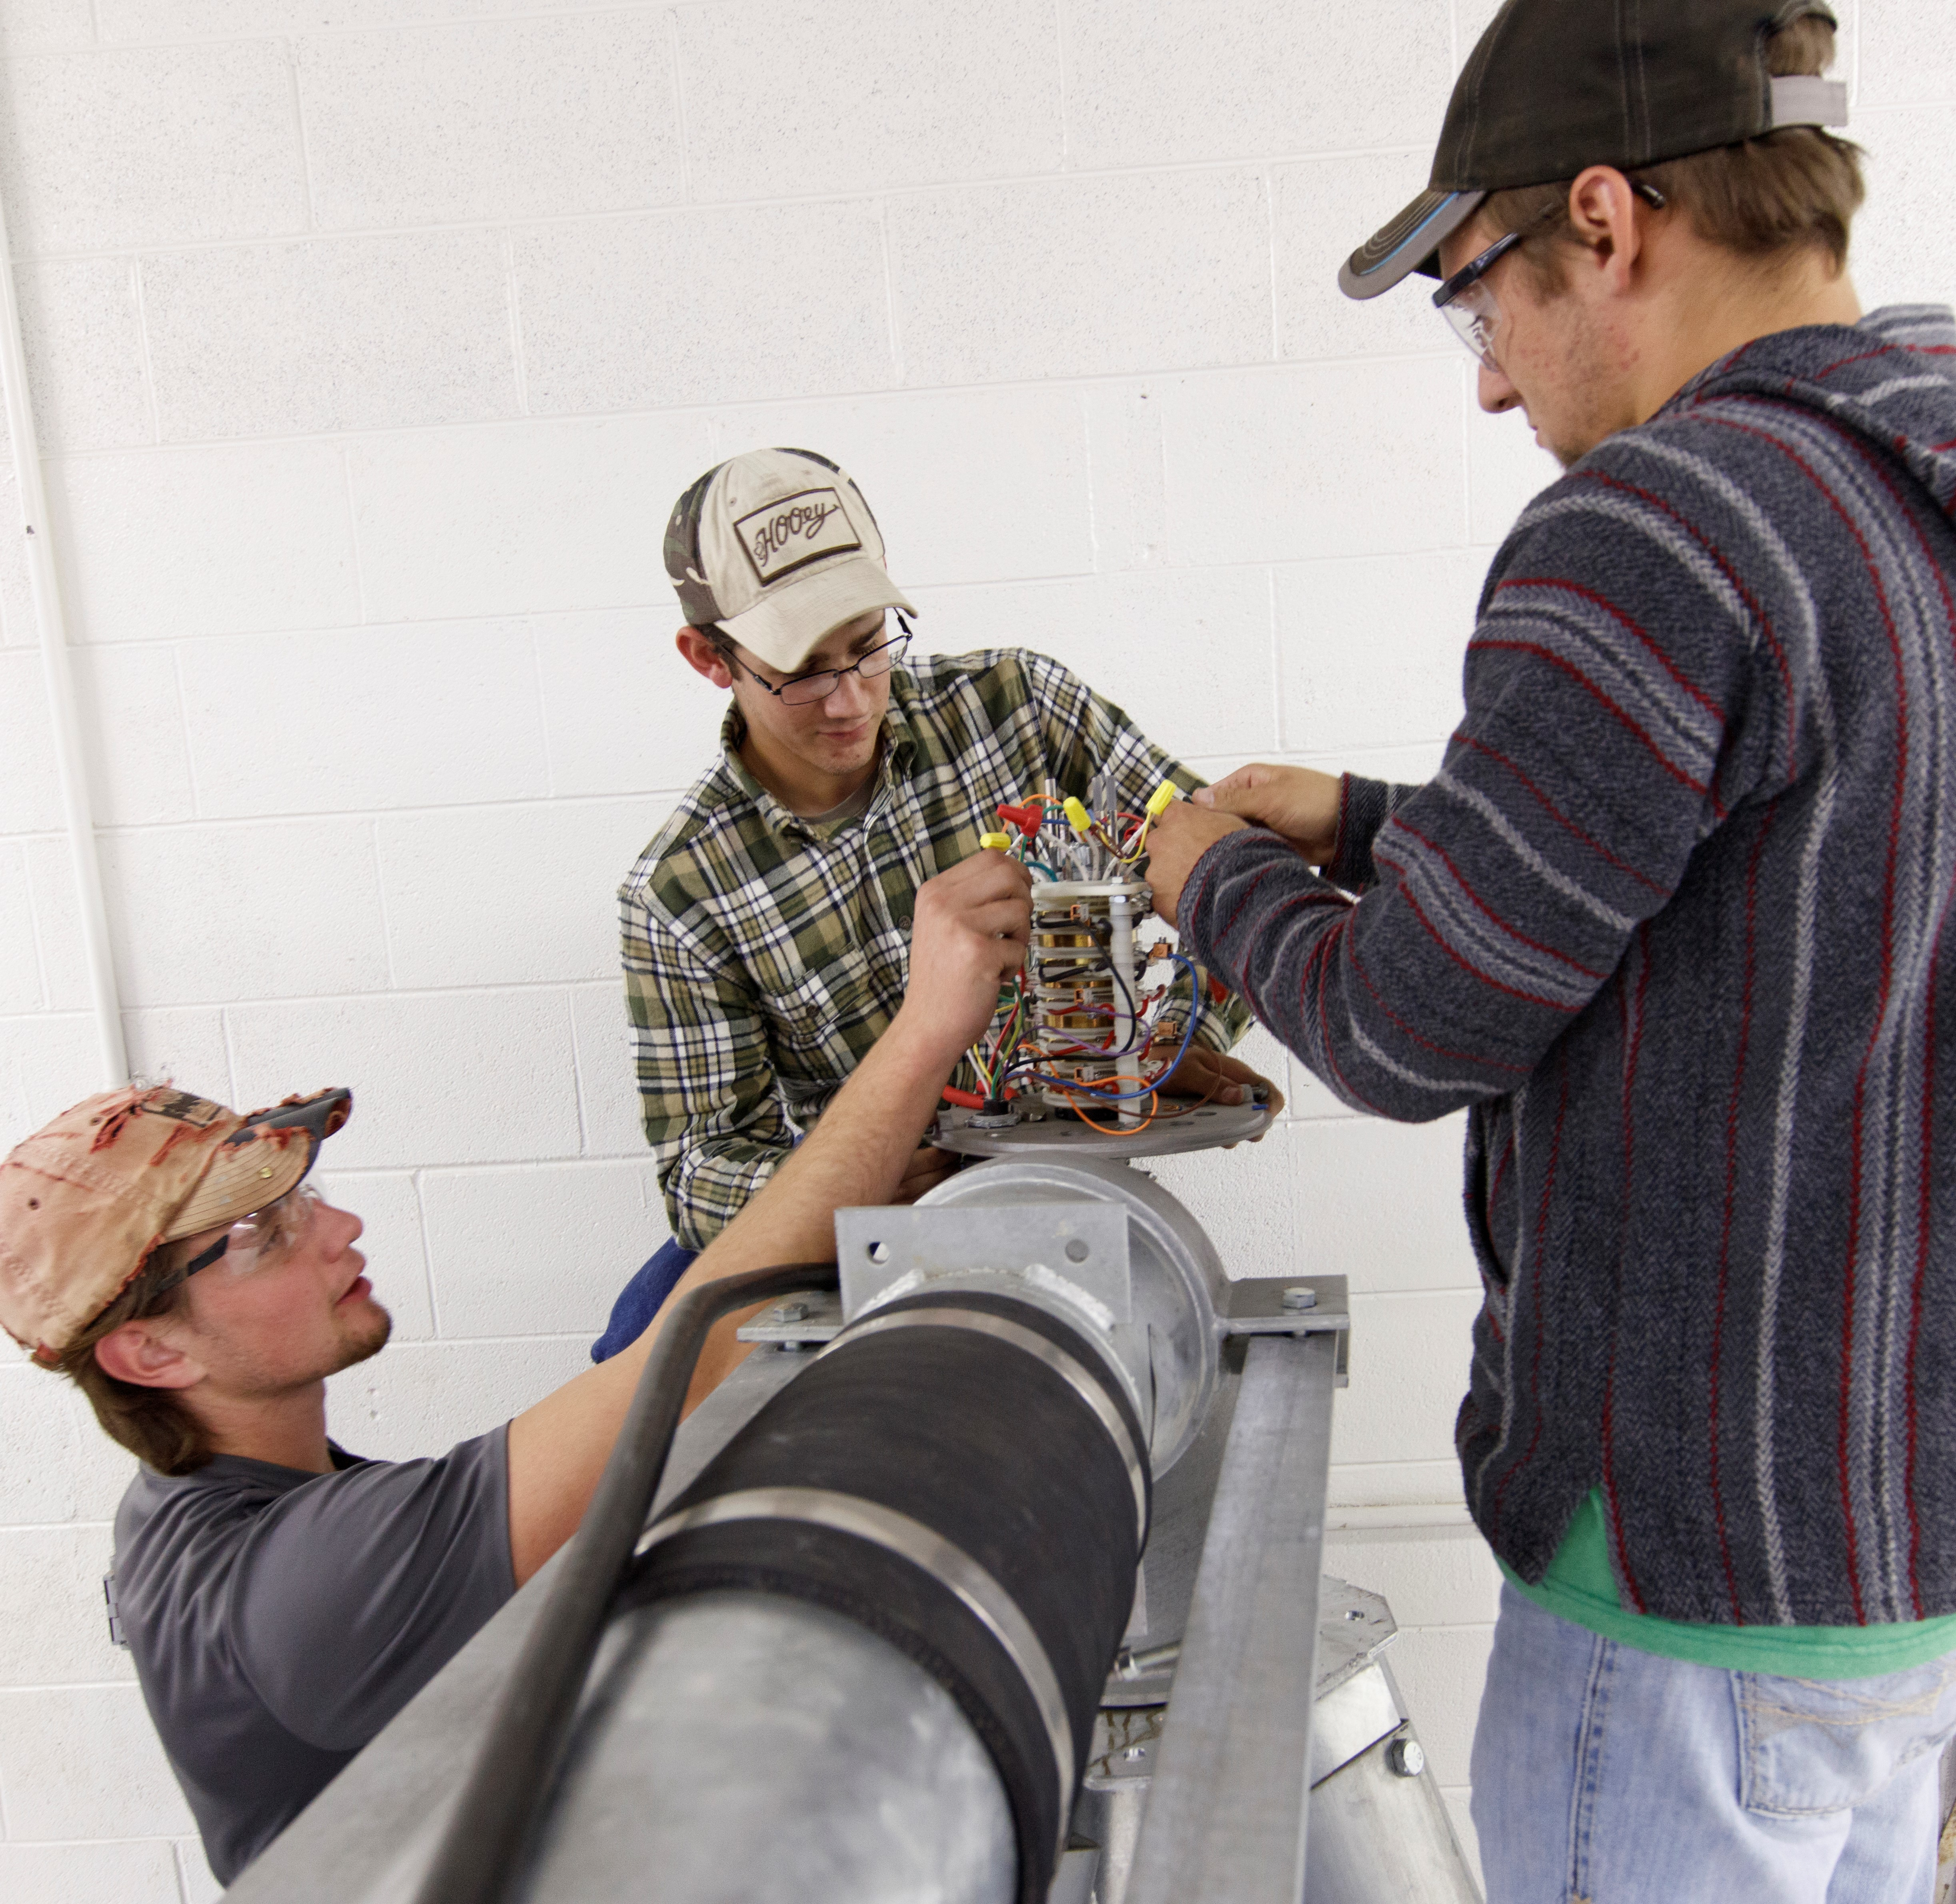 Students wire an electrical circuit on a center pivot irrigation system at the NCTA laboratory. (Craig Chandler / NCTA News)